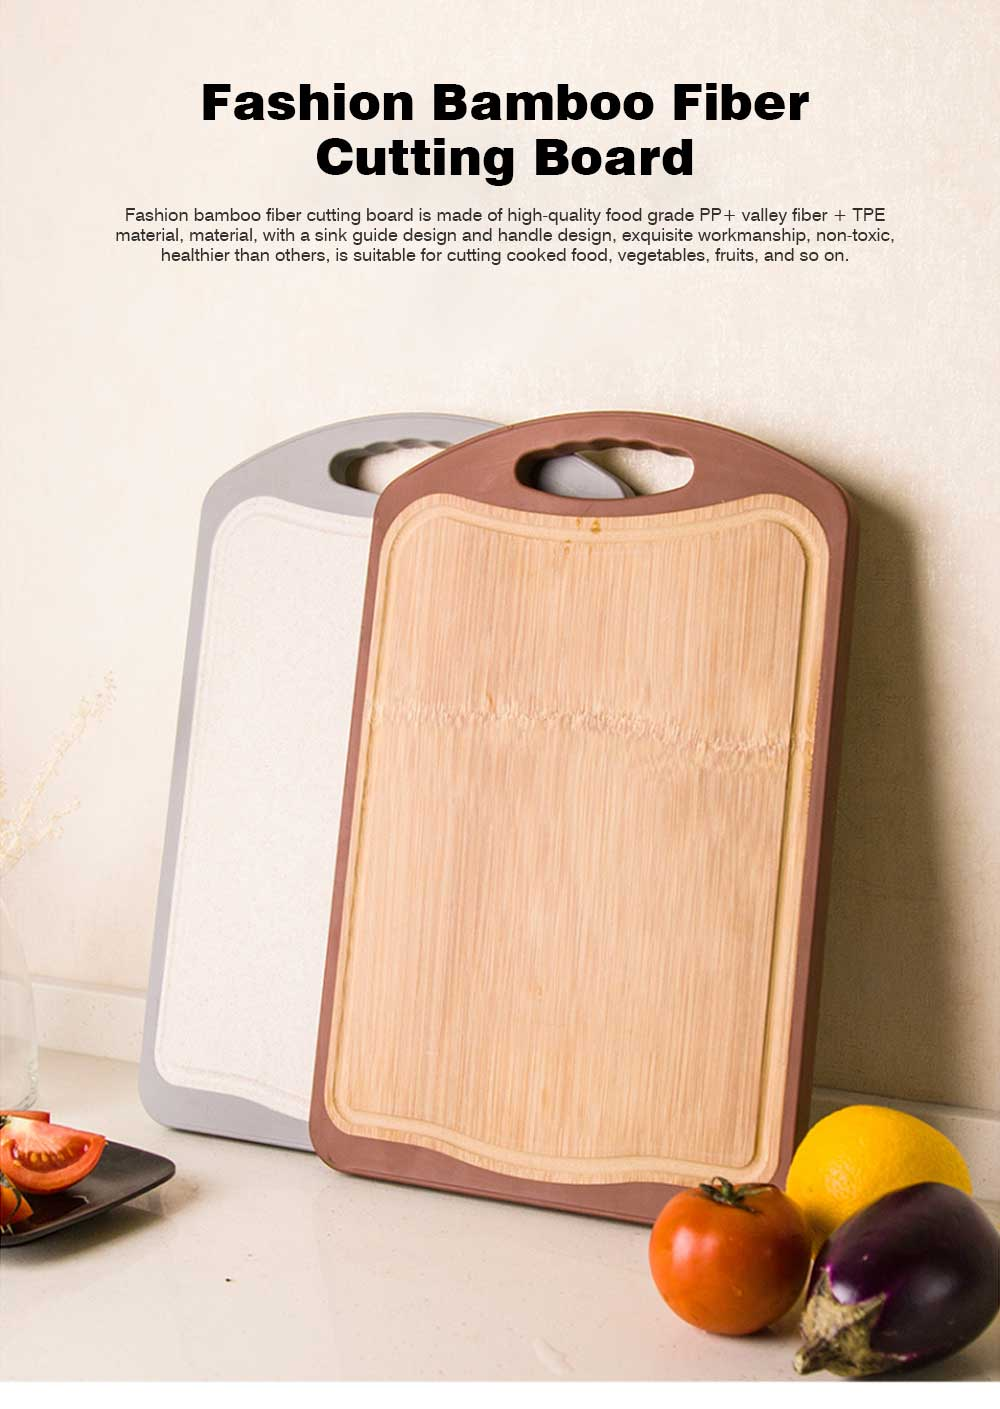 Whole Bamboo Fiber Composite Cutting Board, Healthy Non-slip Cutting Board for Cutting Cooked Food, Vegetables, Fruits 0